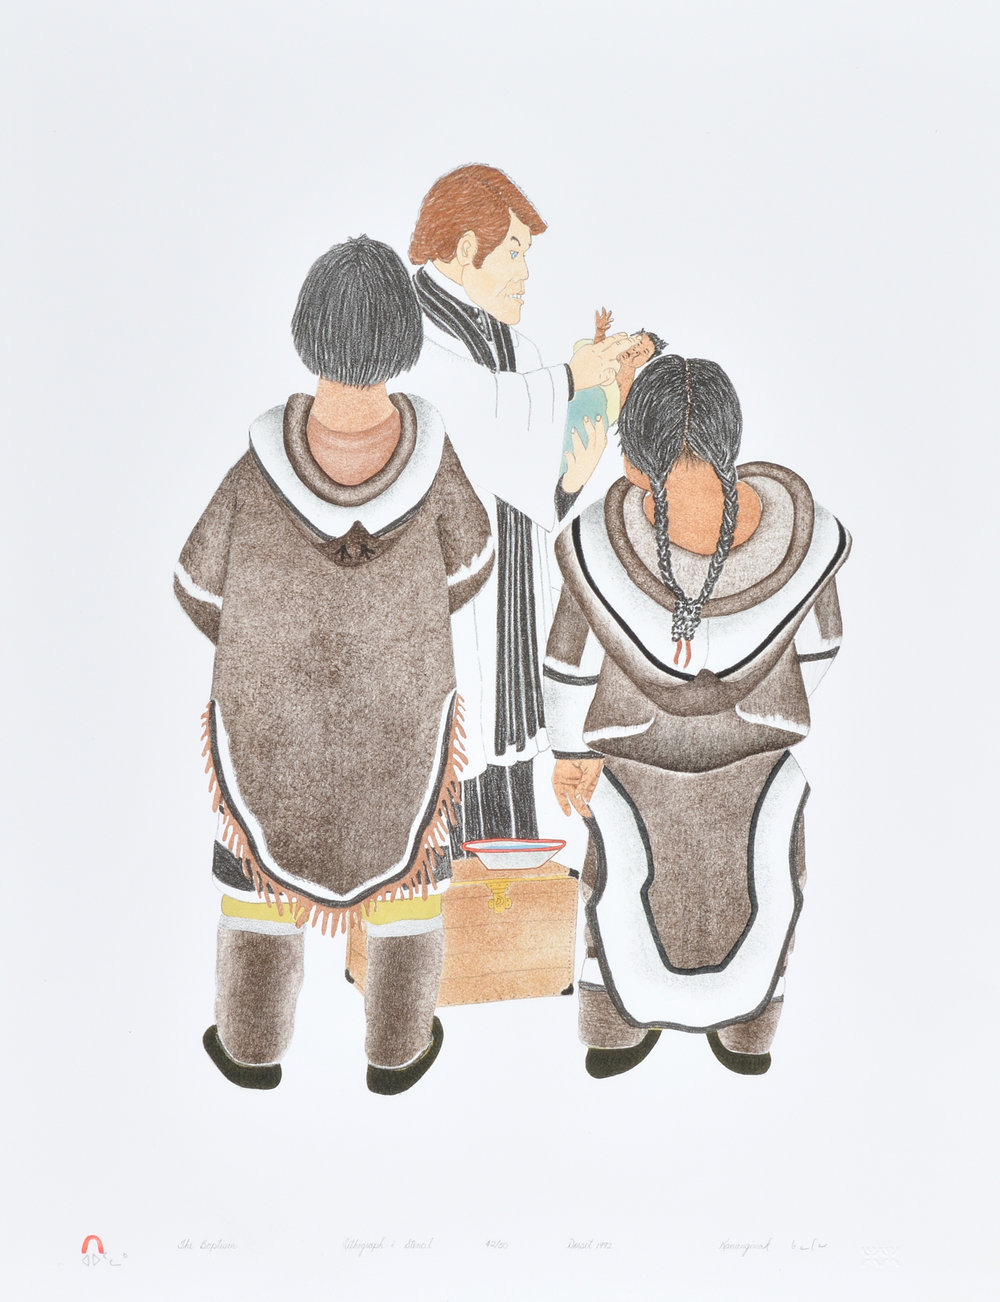 Kananginak Pootoogook THE BAPTISM Lithograph   1992 66.2 x 51.4 cm $400.00 CDN Released in the 1992 collection Dorset ID#: 92-16